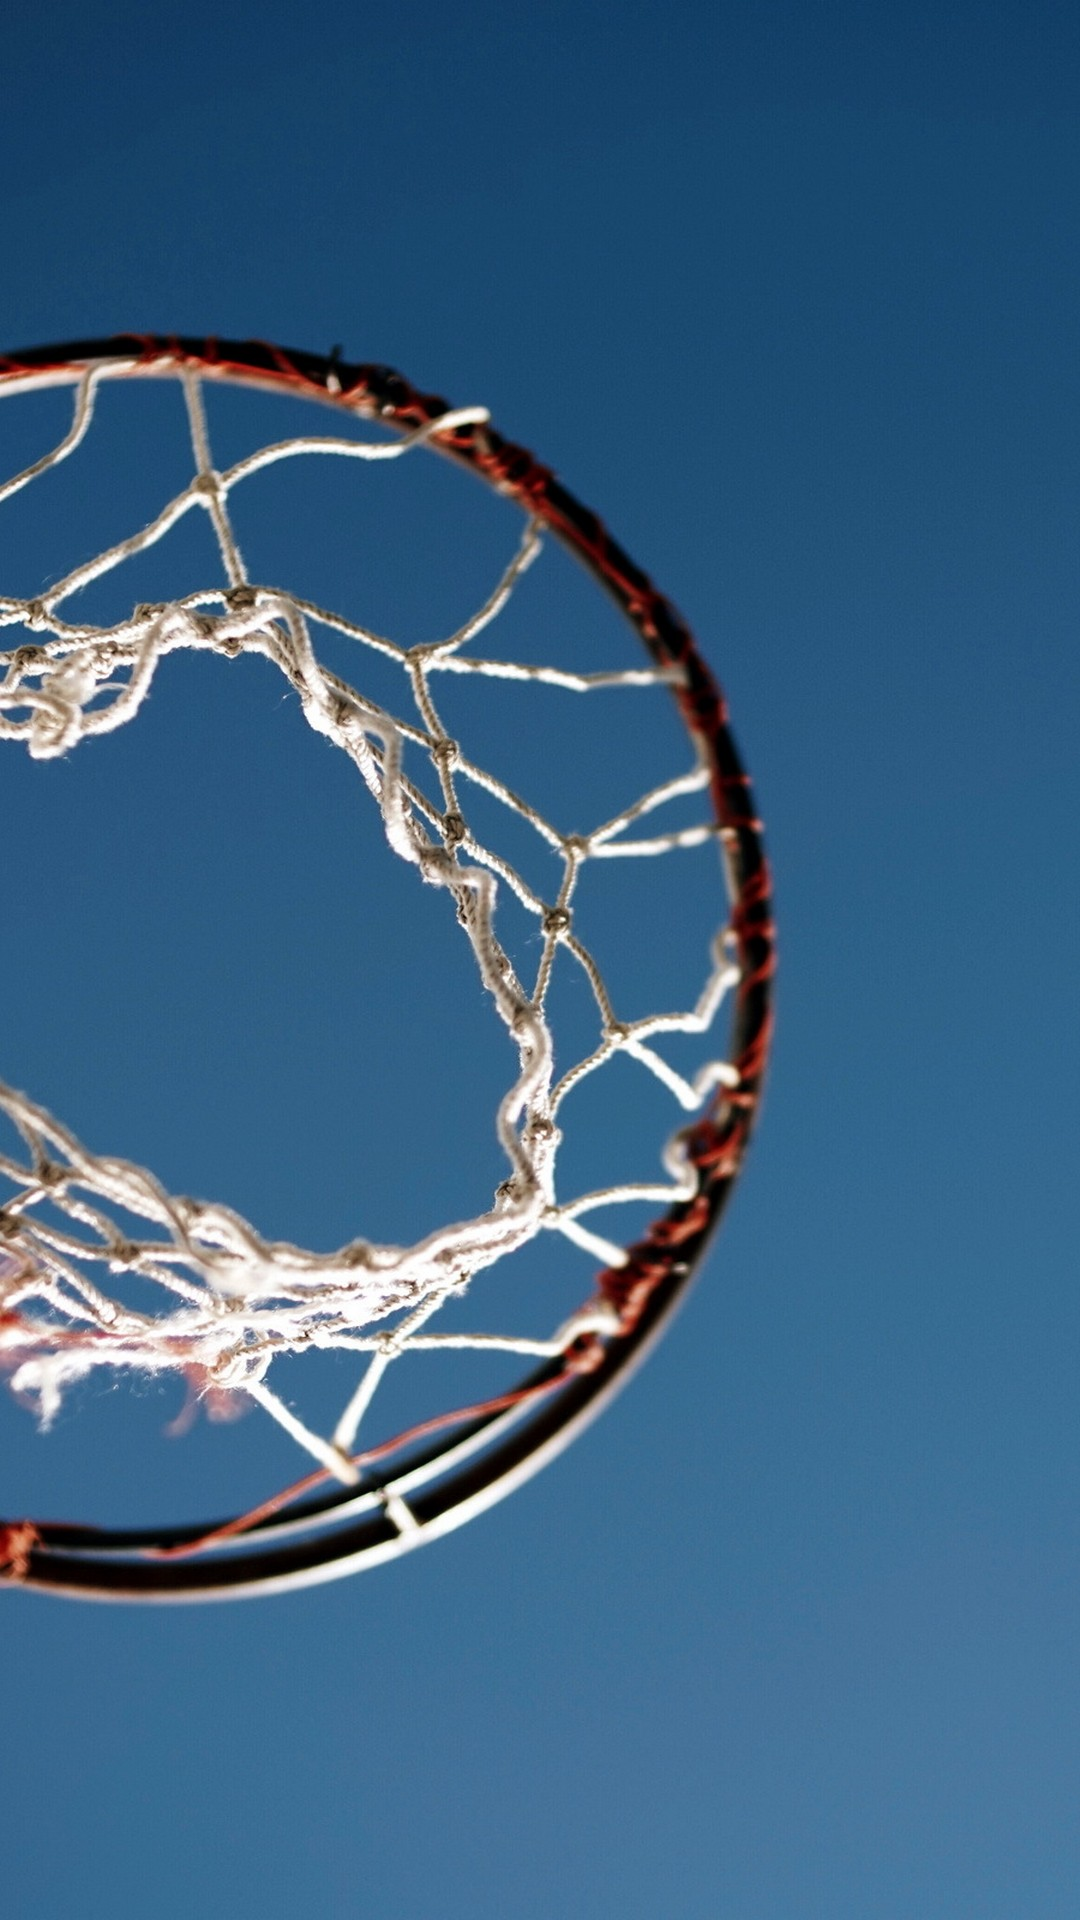 Iphone Wallpaper Hd Basketball With Image Dimensions - Lock Screen Iphone Wallpaper Hd , HD Wallpaper & Backgrounds